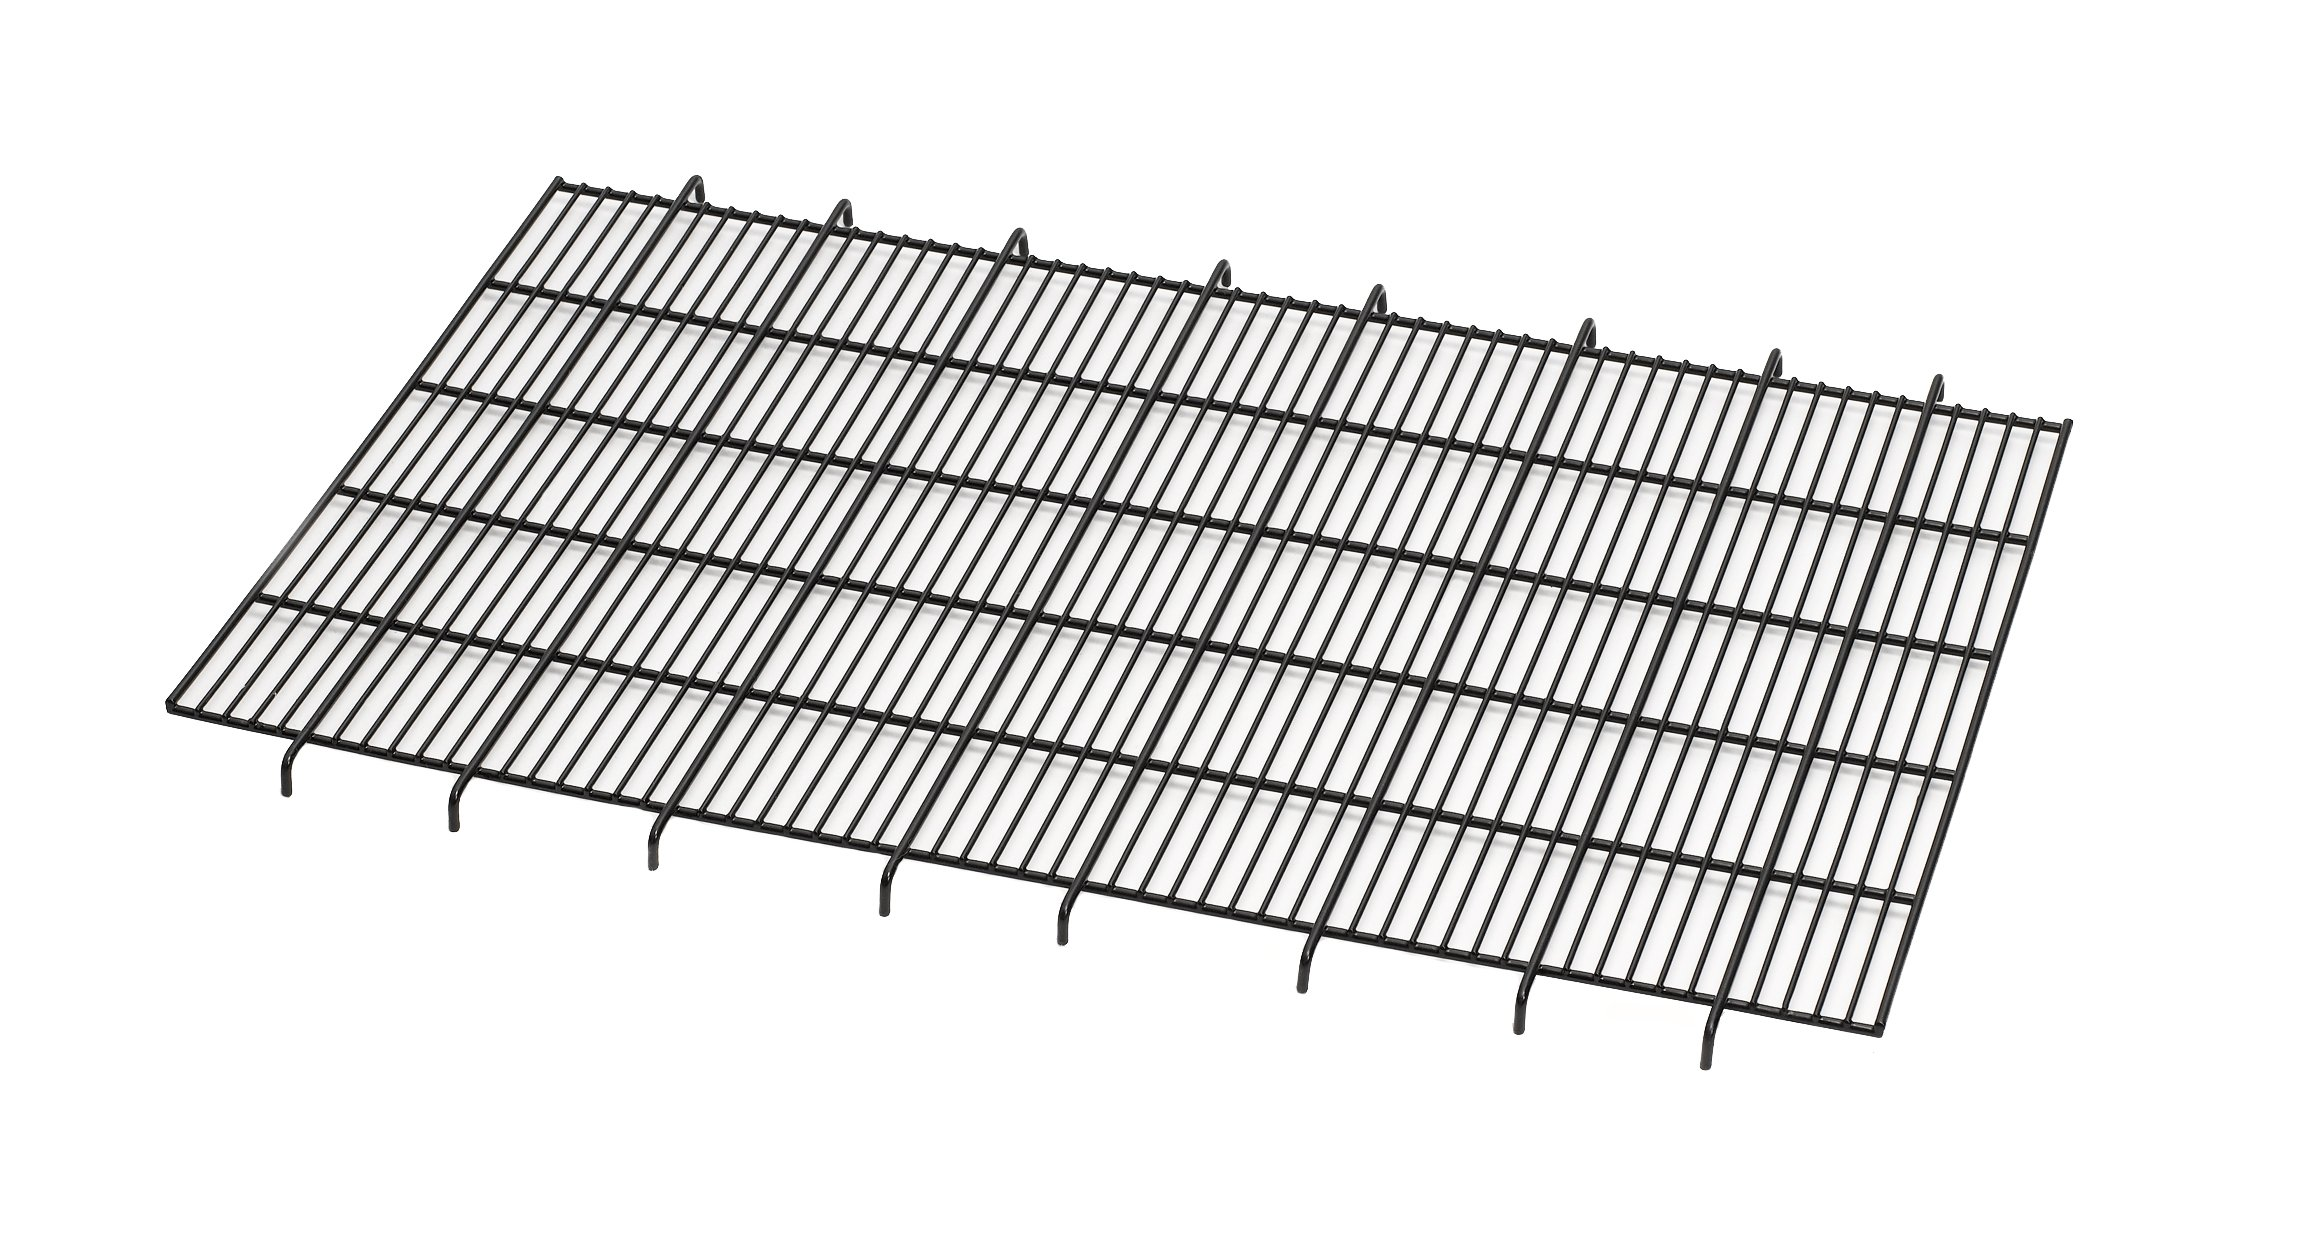 Floor Grid for Dog Crate | Elevated Floor Grid Fits MidWest Folding Metal Dog Crate Models 1536U, 1536DDU, 436, 436DD by MidWest Homes for Pets